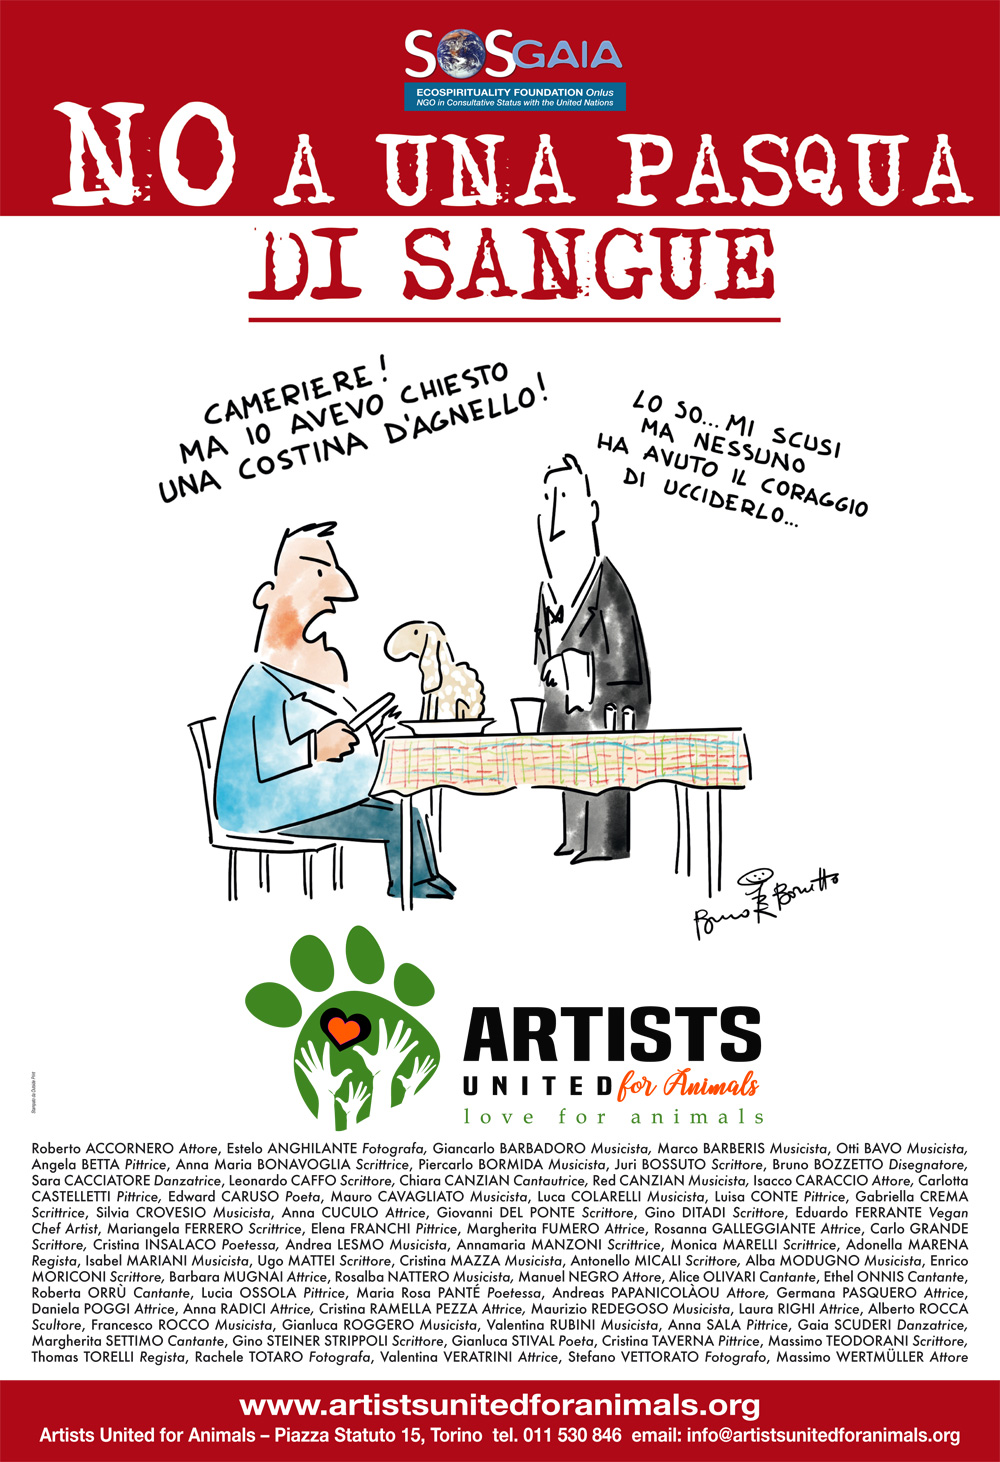 ARTISTS UNITED FOR ANIMALS - NO A UNA PASQUA DI SANGUE